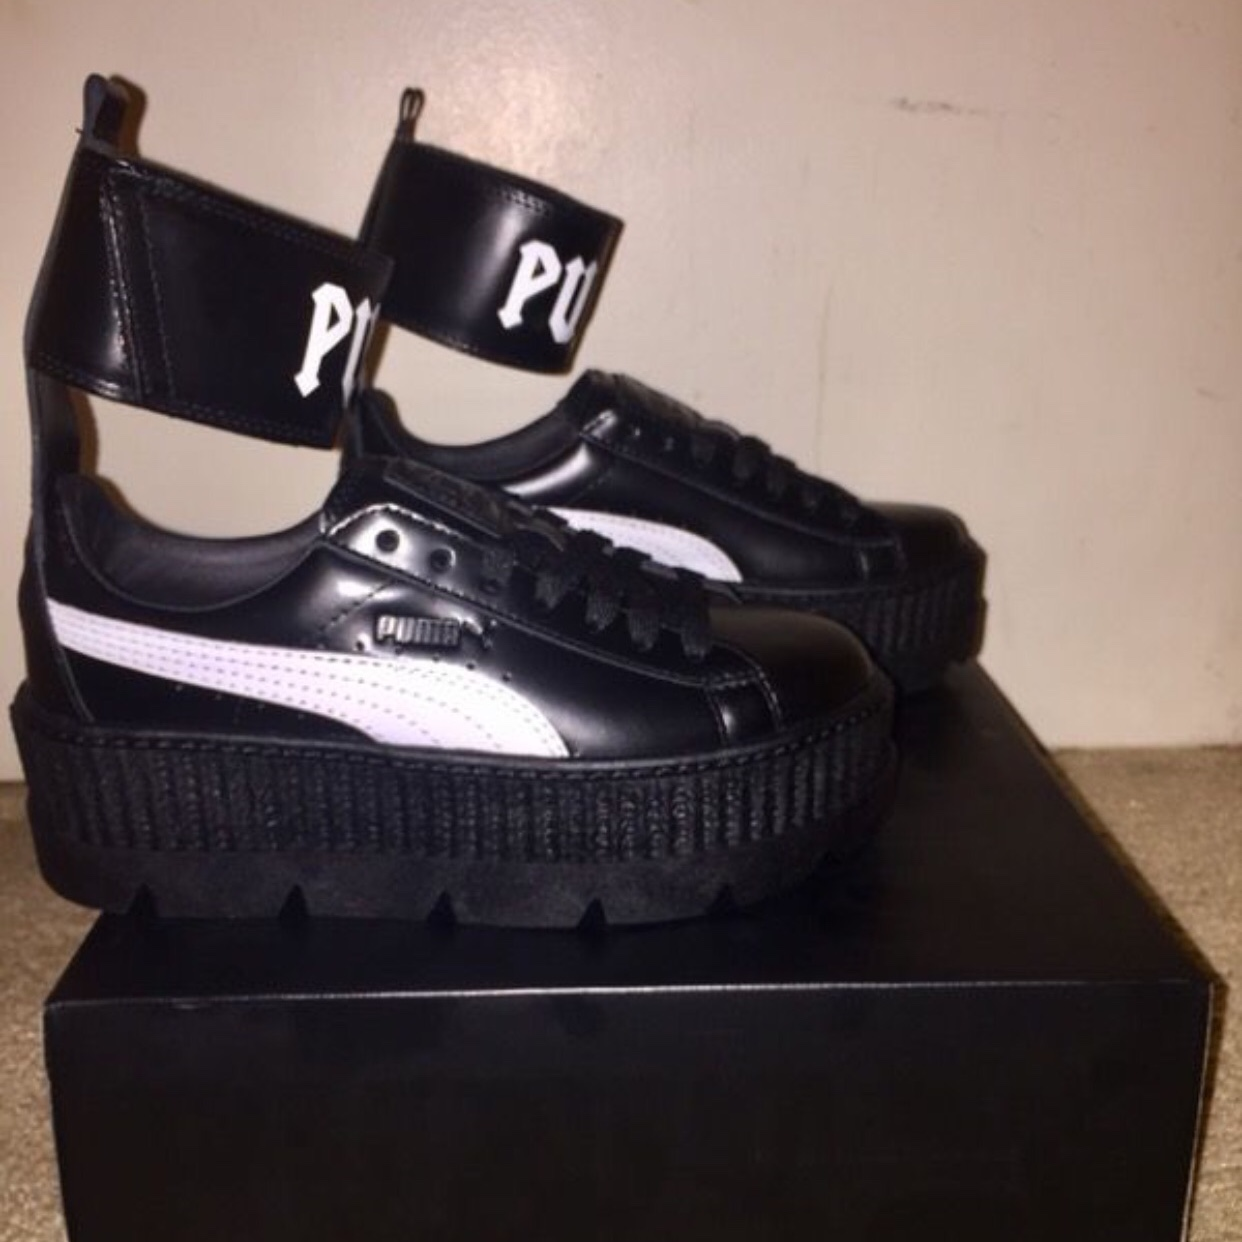 reputable site 845d1 6d458 Fenty X Puma by Rihanna Black Ankle Strap Sneakers ...